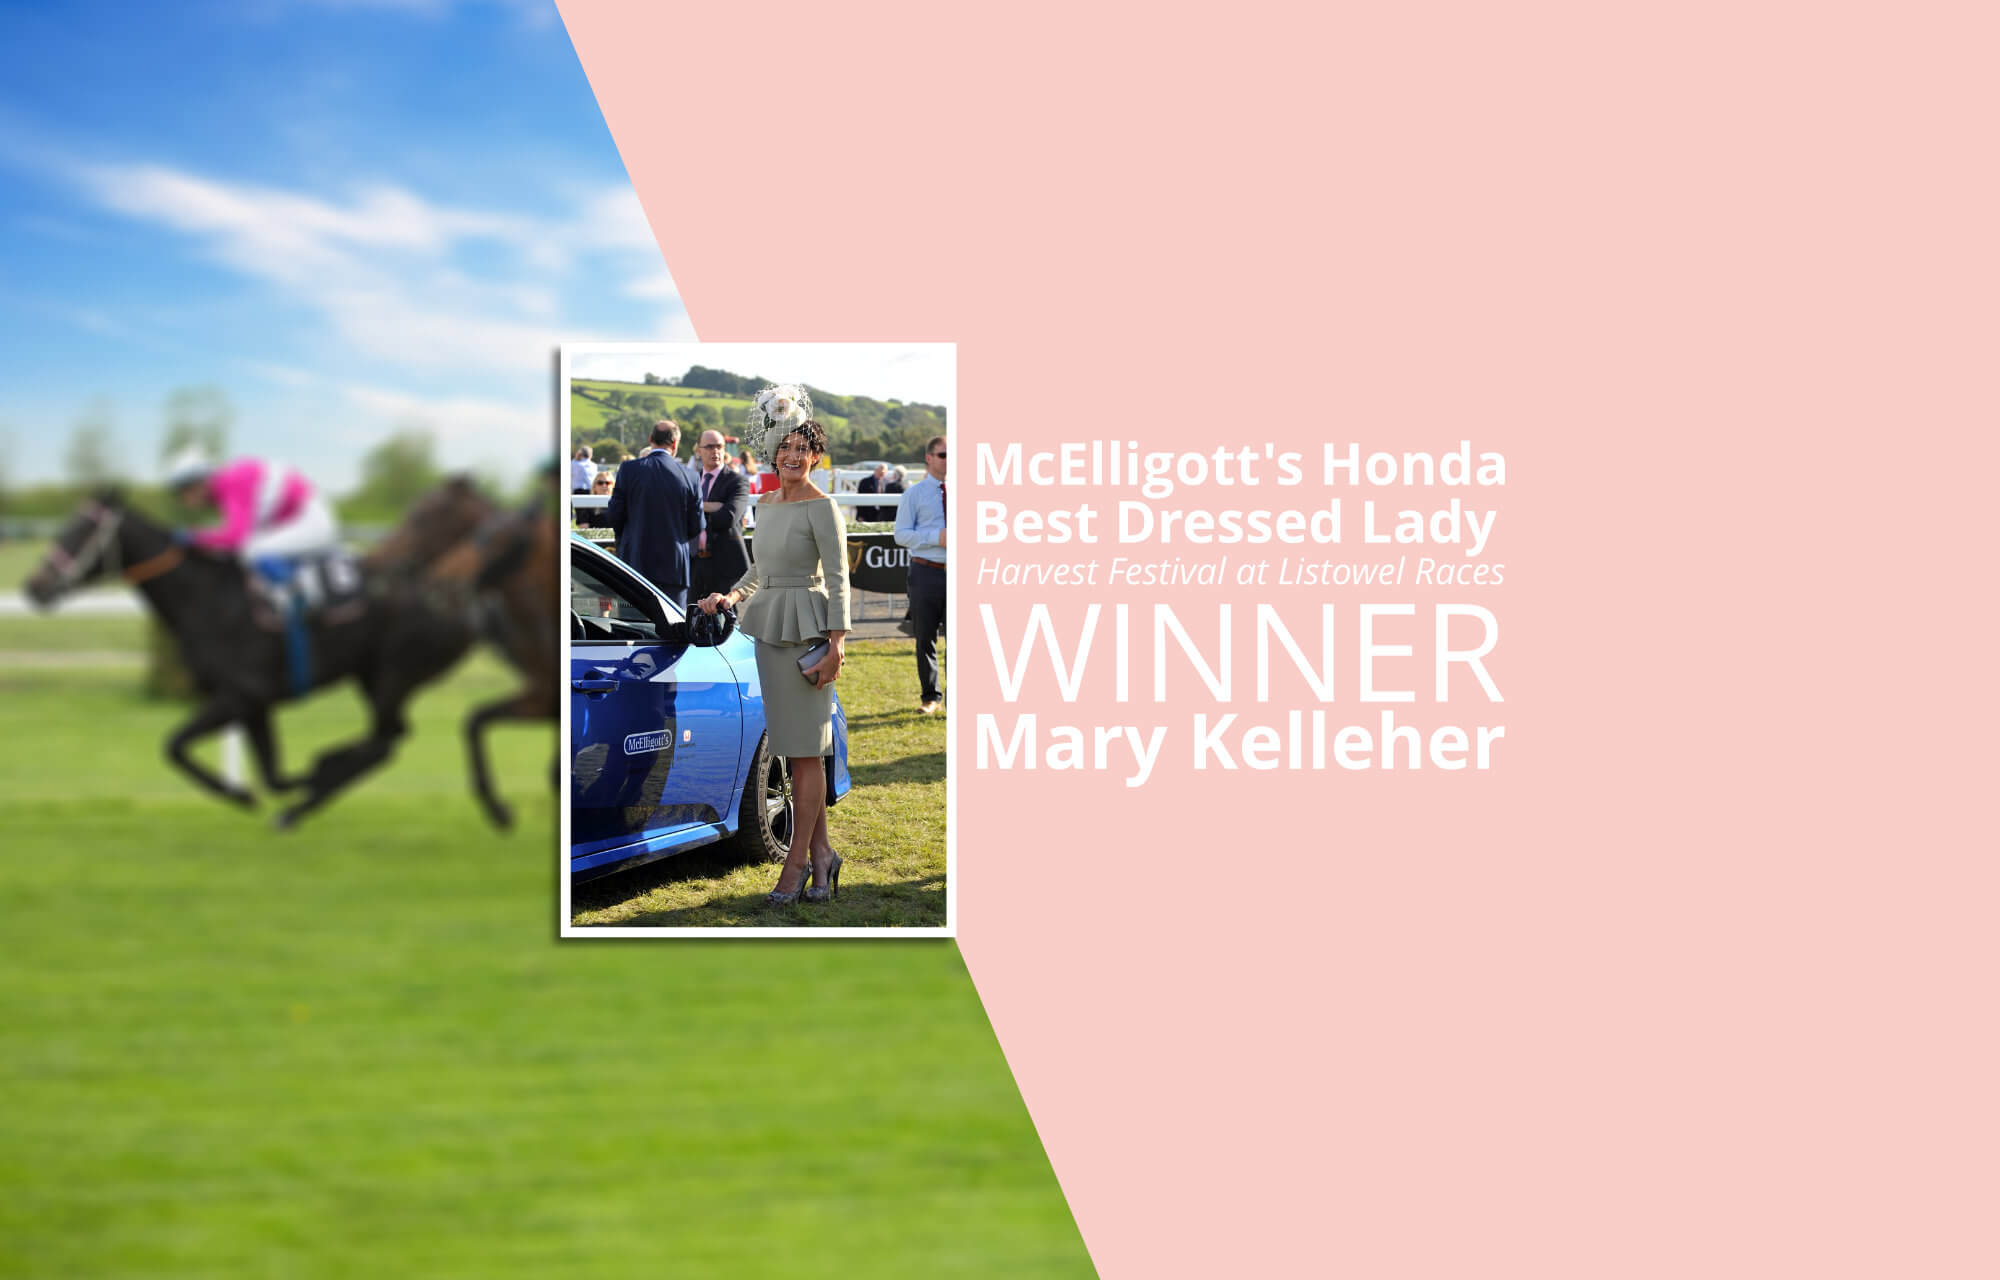 McElligott's Honda Best Dressed Lady at Listowel Races